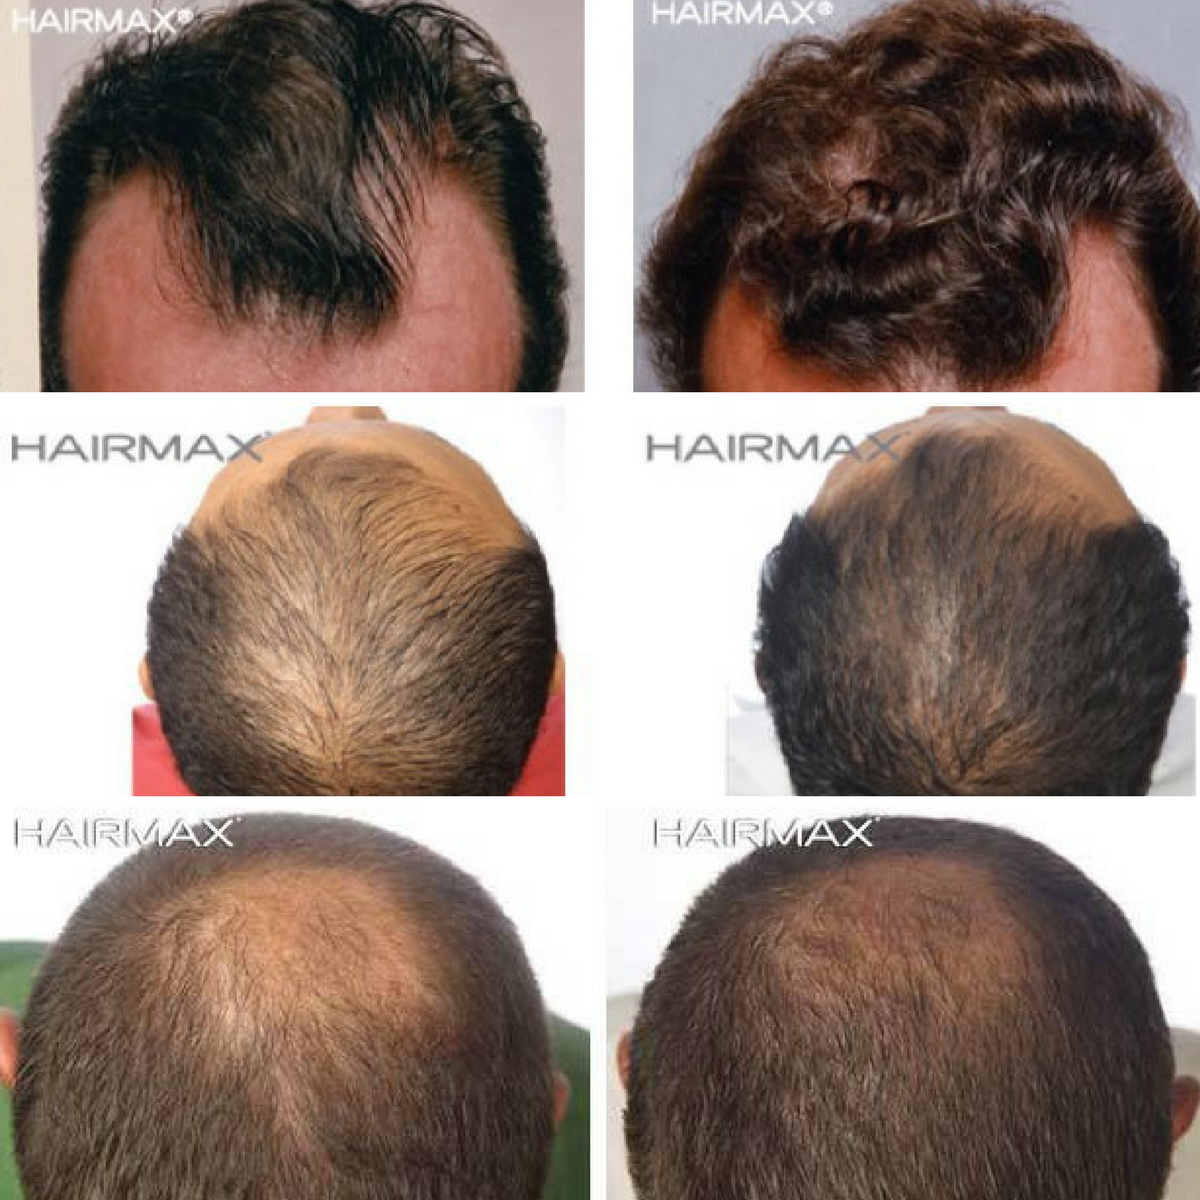 hair regrowth for men before & after